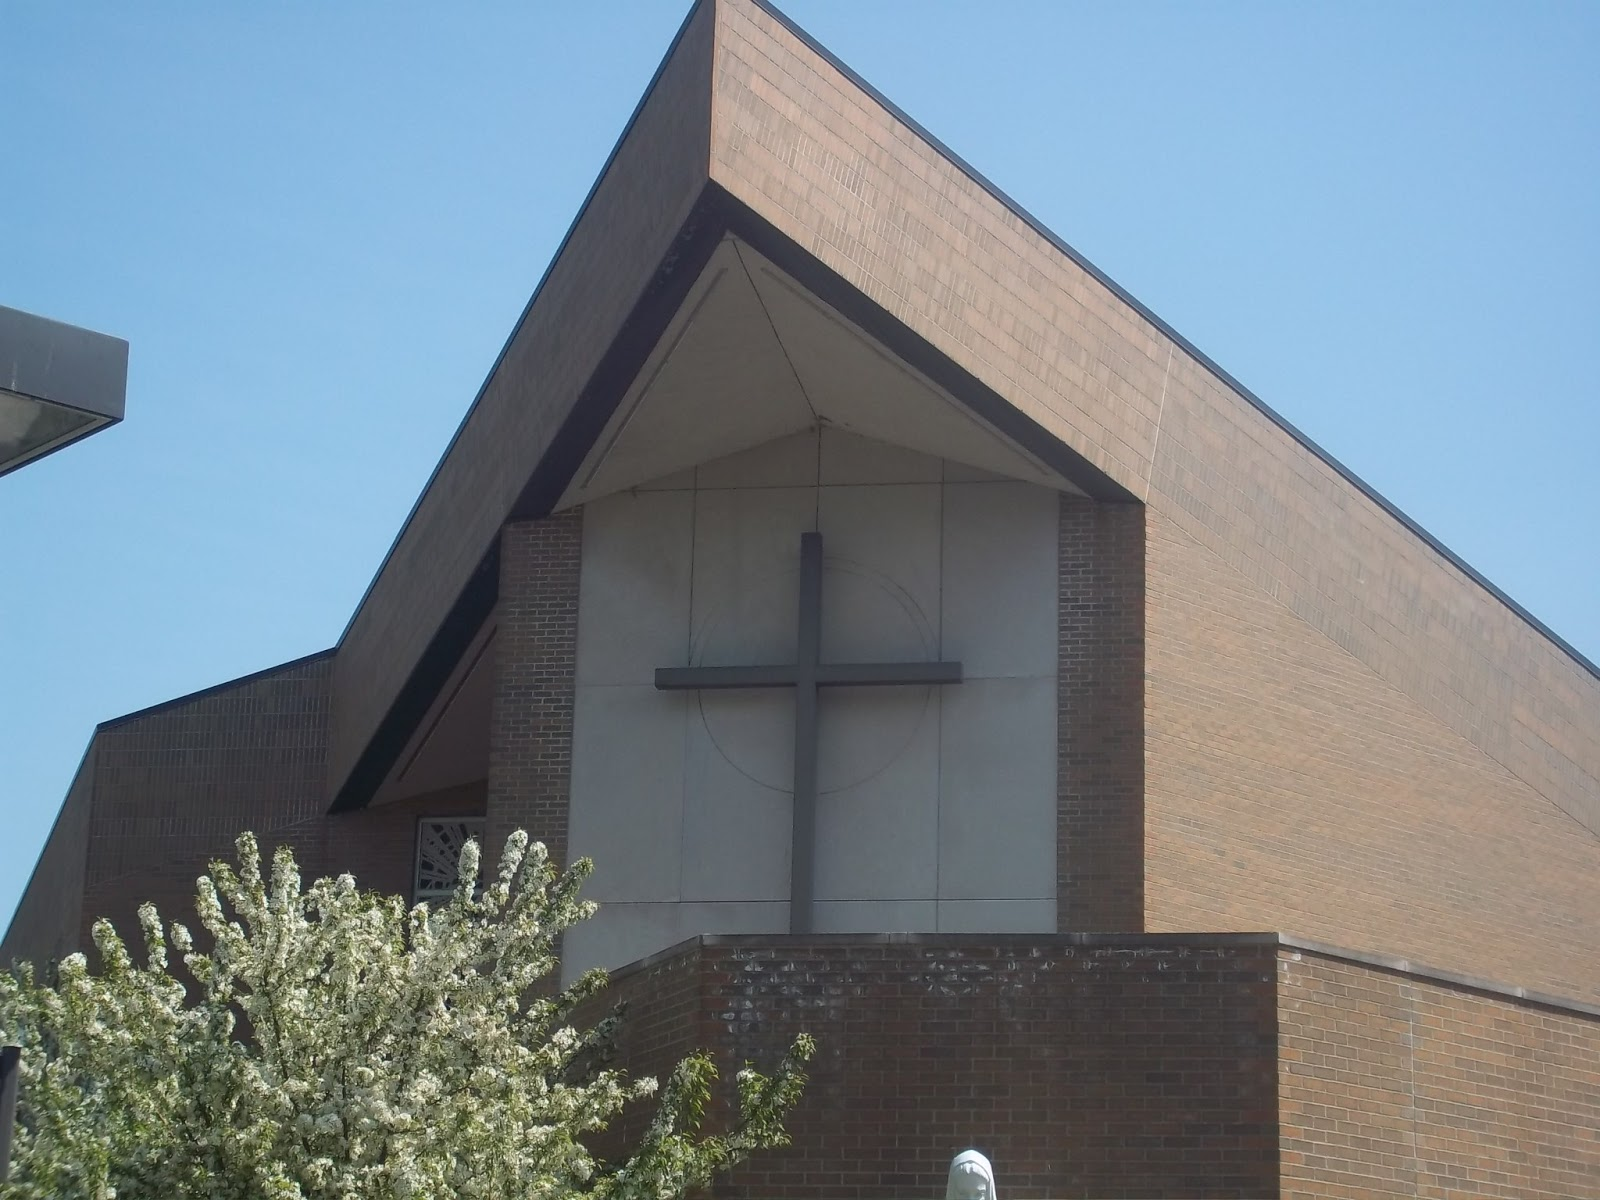 grosse pointe catholic single women This webpage is dedicated to listing upcoming events and activities, as well as  other items of interest, for catholics who are single modifications to this page are .